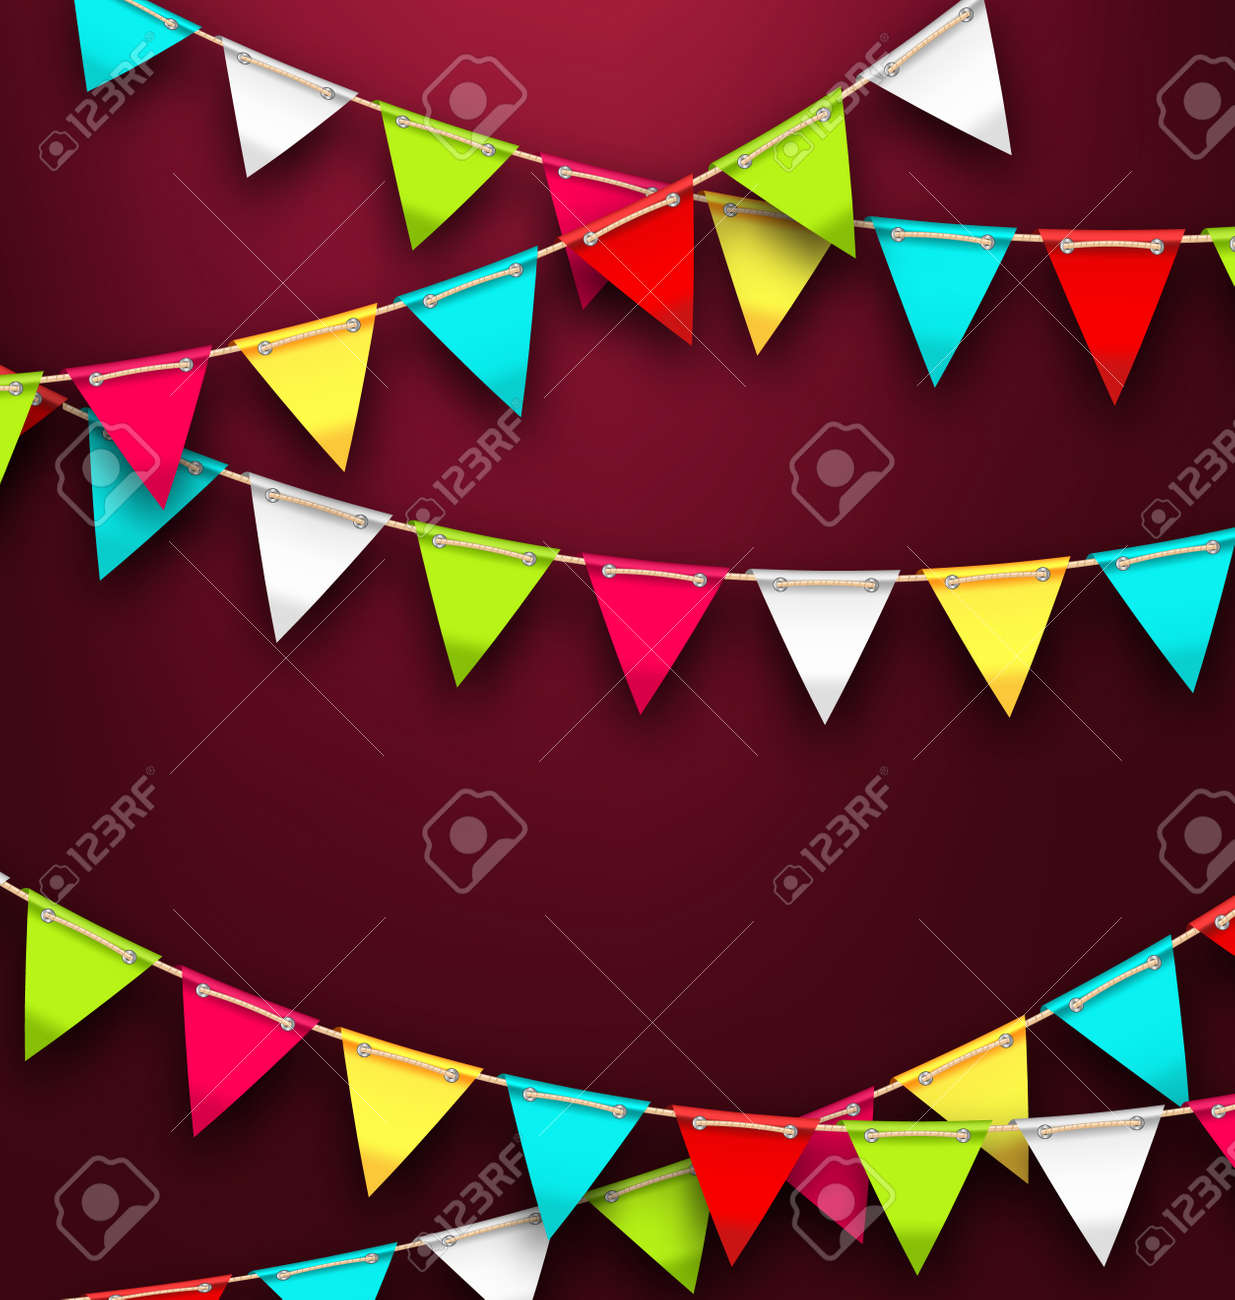 Illustration party background with colorful bunting flags for illustration party background with colorful bunting flags for holidays bright template for poster postcard maxwellsz